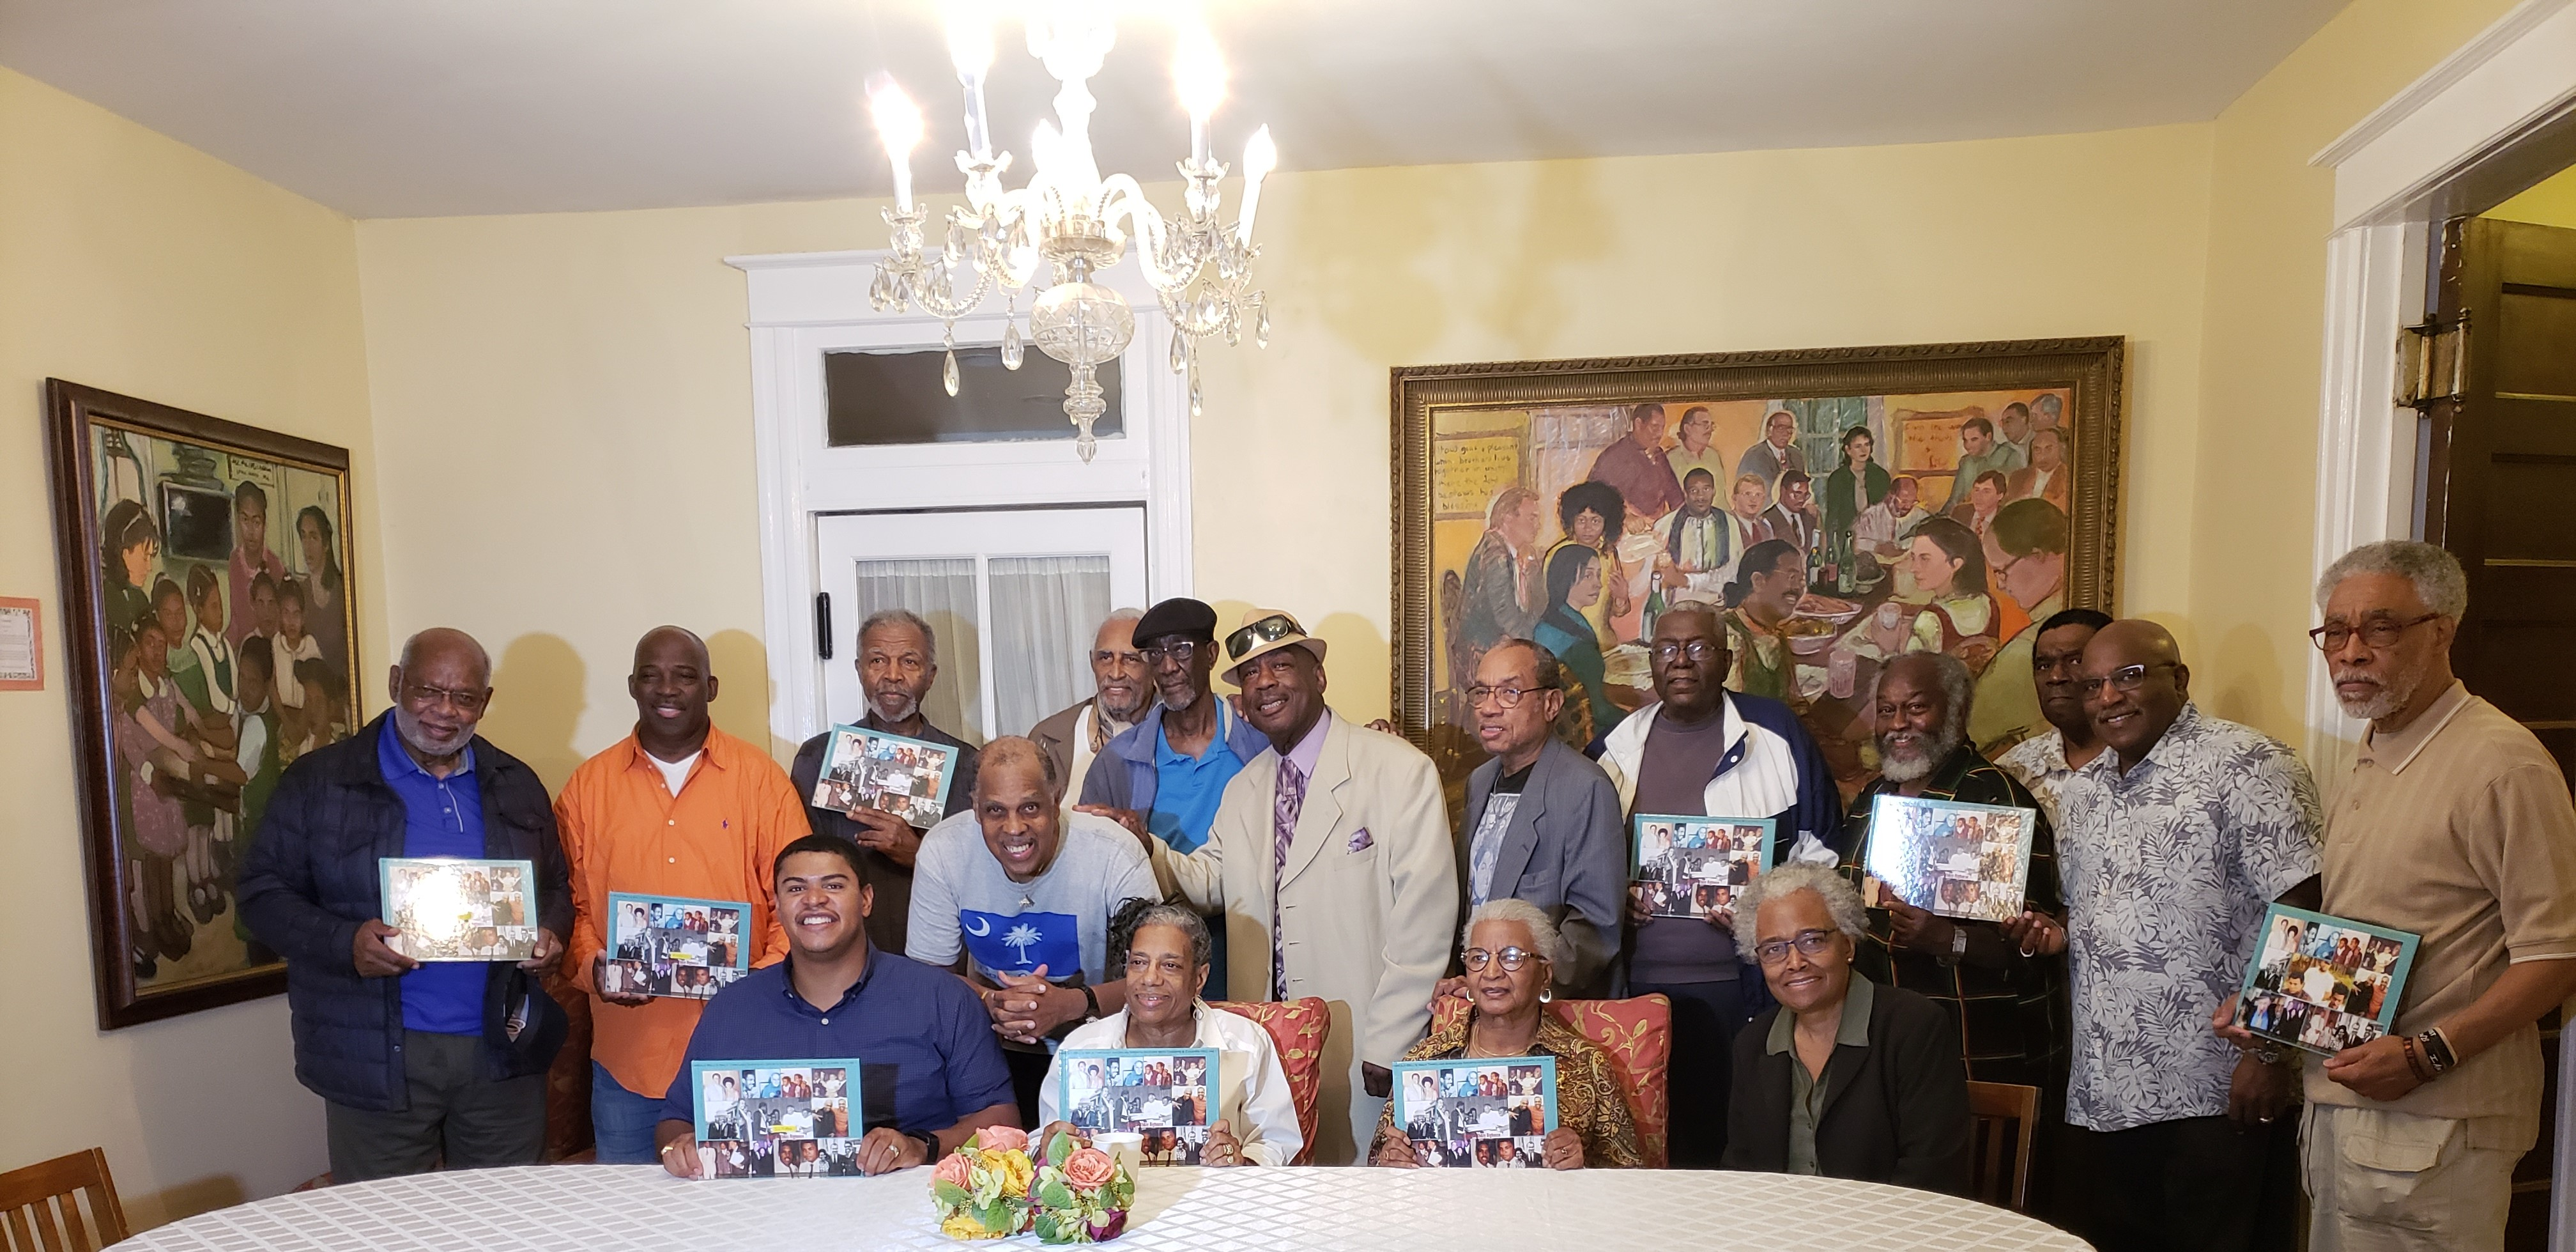 Check Out Pics From Harold Bell's Book Signing